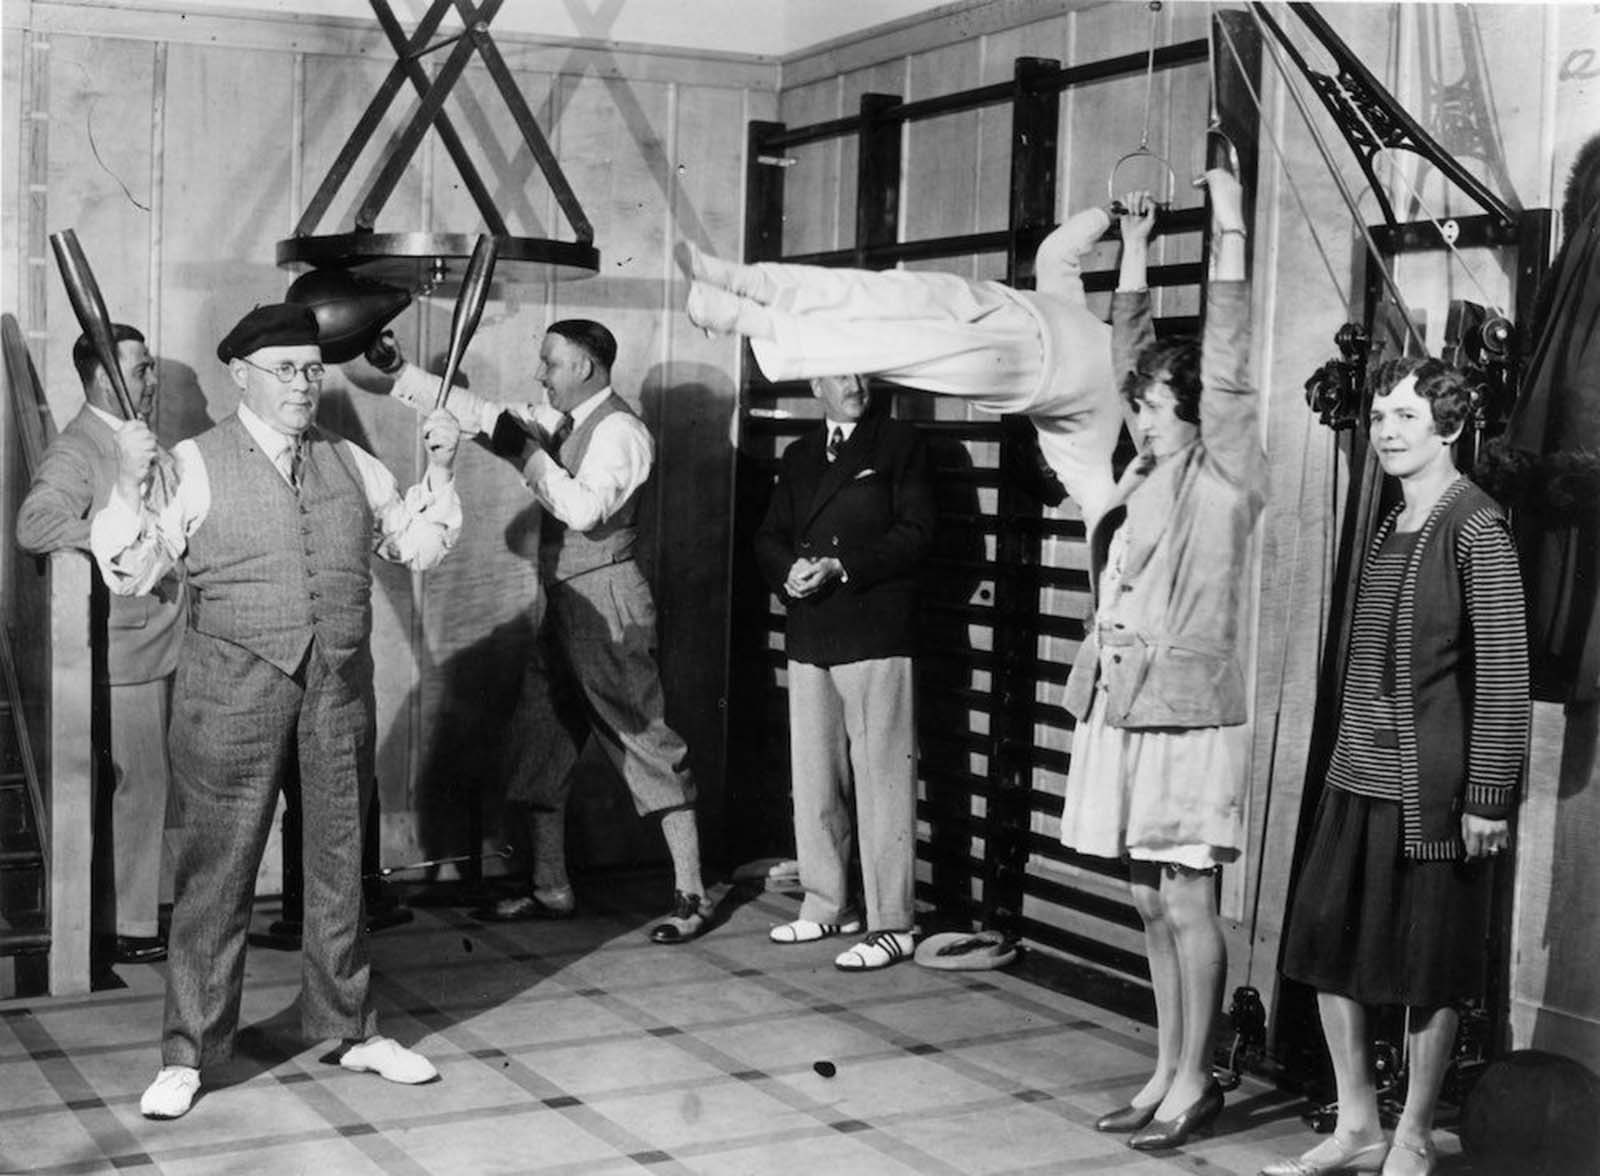 Passengers on the Canadian Pacific liner Duchess of Bedford keep fit in the ship's gymnasium. Dec, 1931.